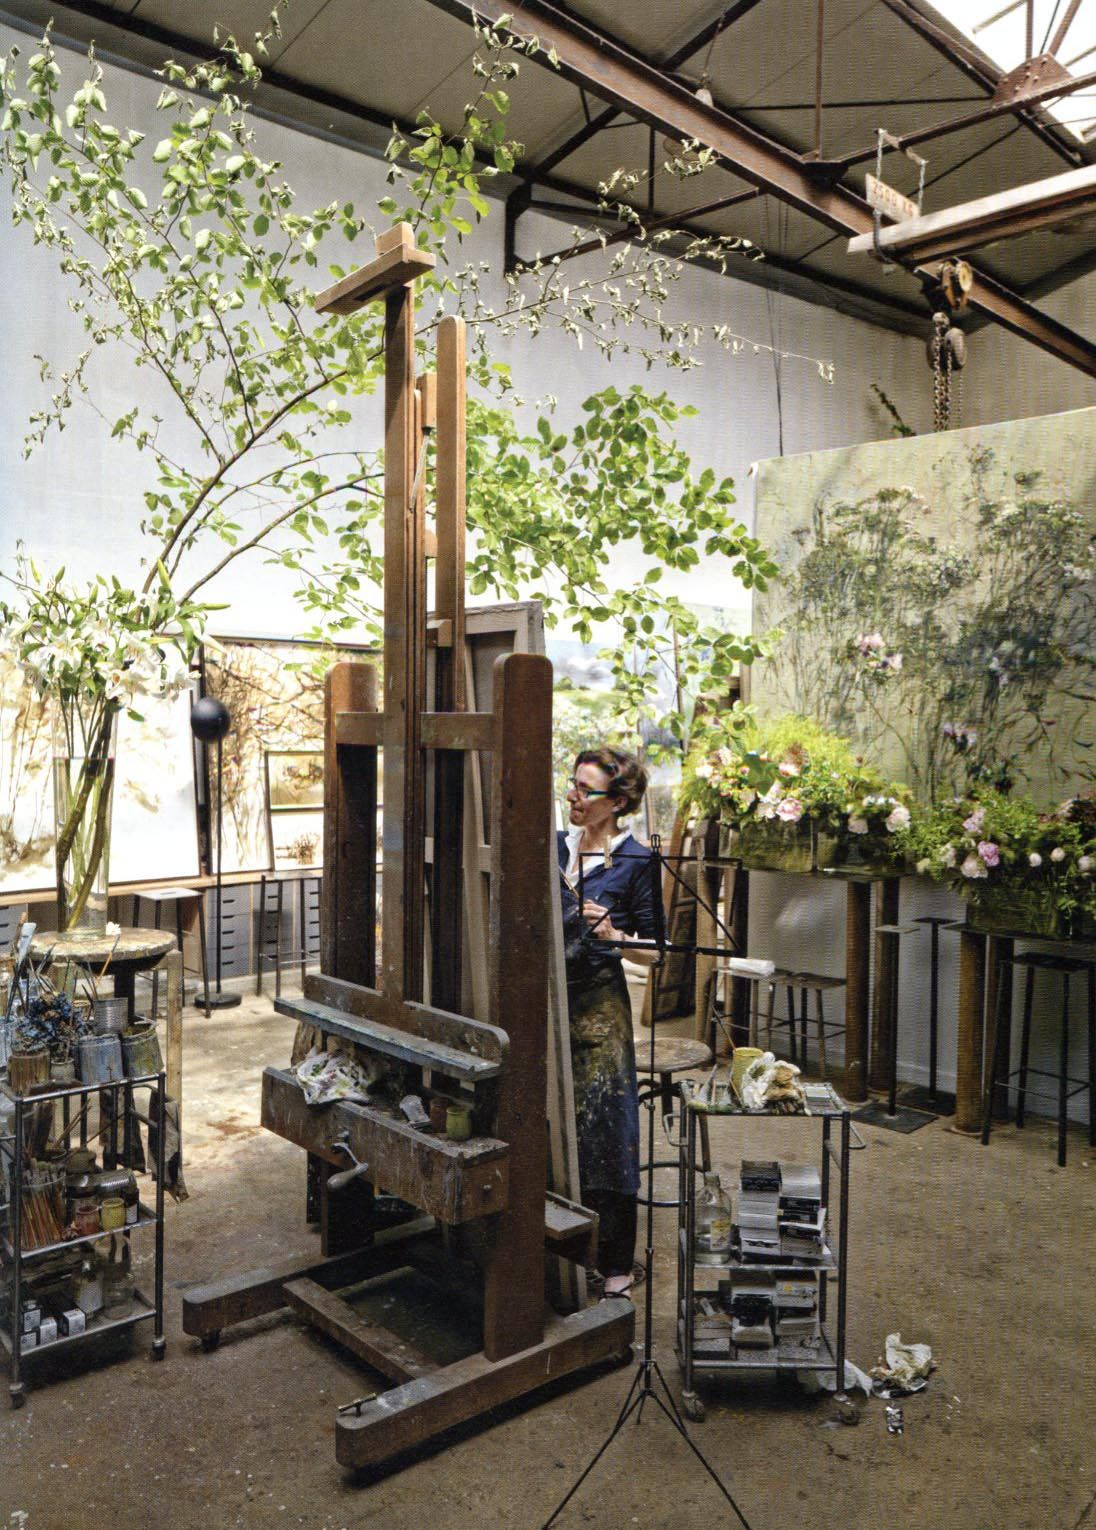 Claire Basler in studio ...I want HER studio! :) It kind of rocks. The space is so open and uncluttered. And it has plants in it! Pretty plants! :)